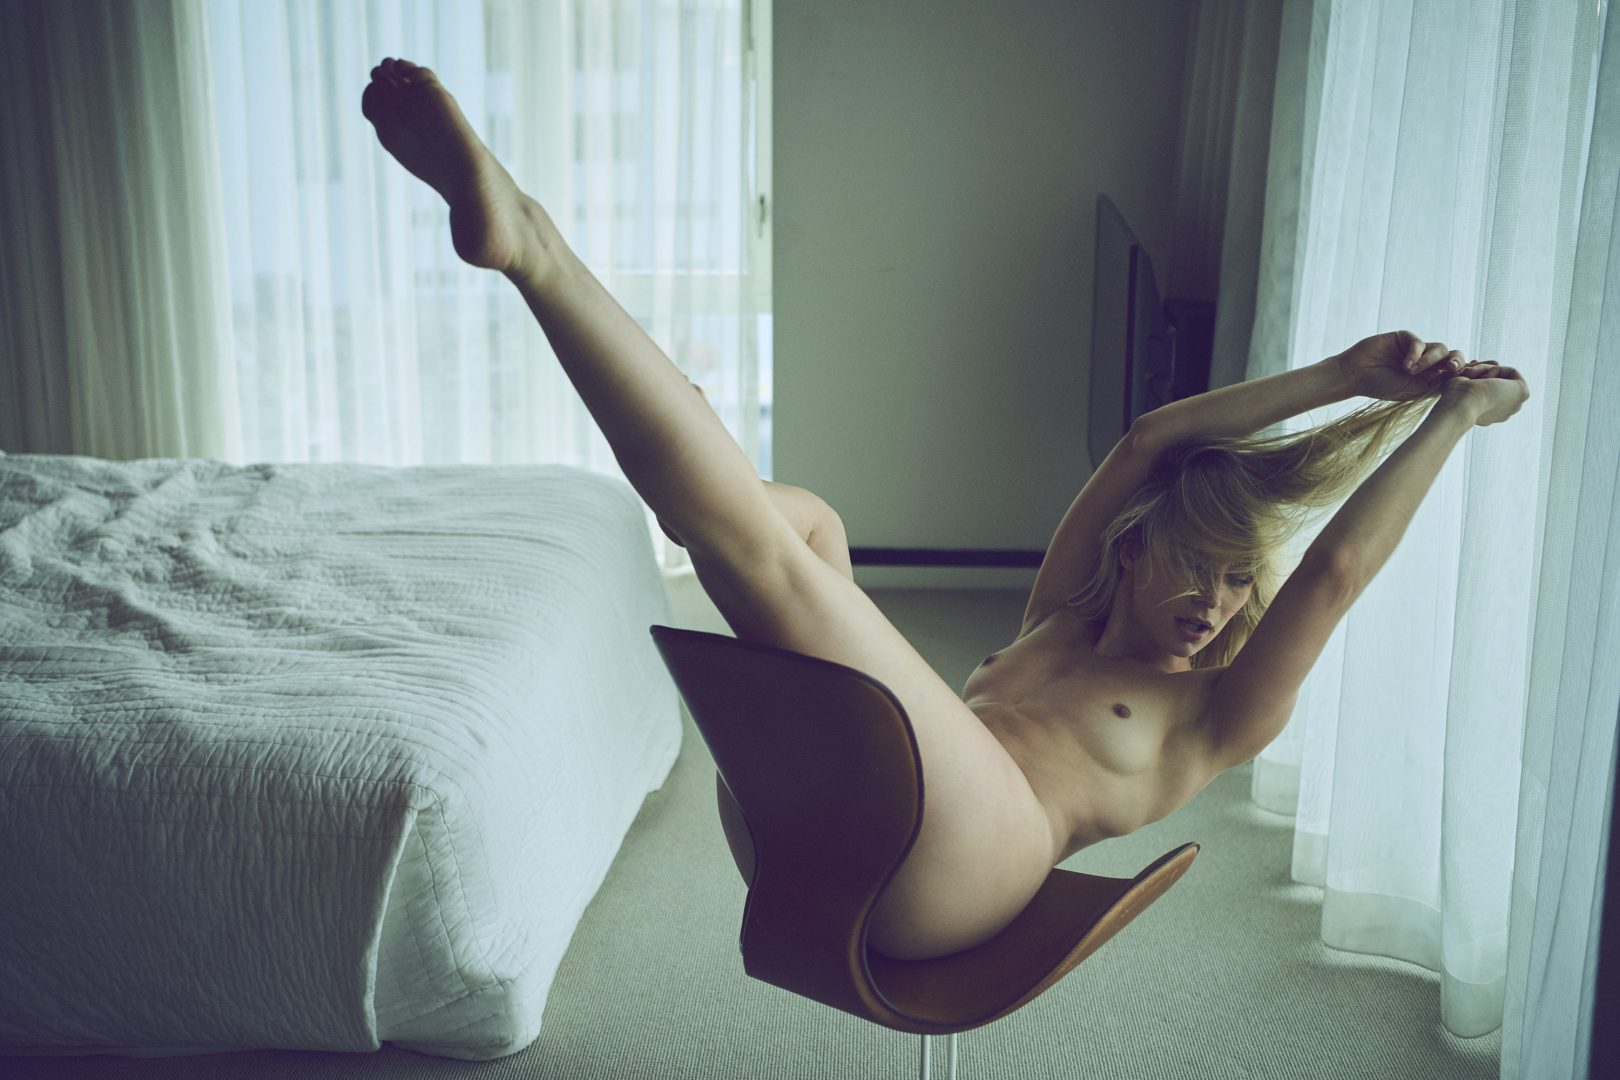 Naked girl on chair in hotel room by Stefan Rappo